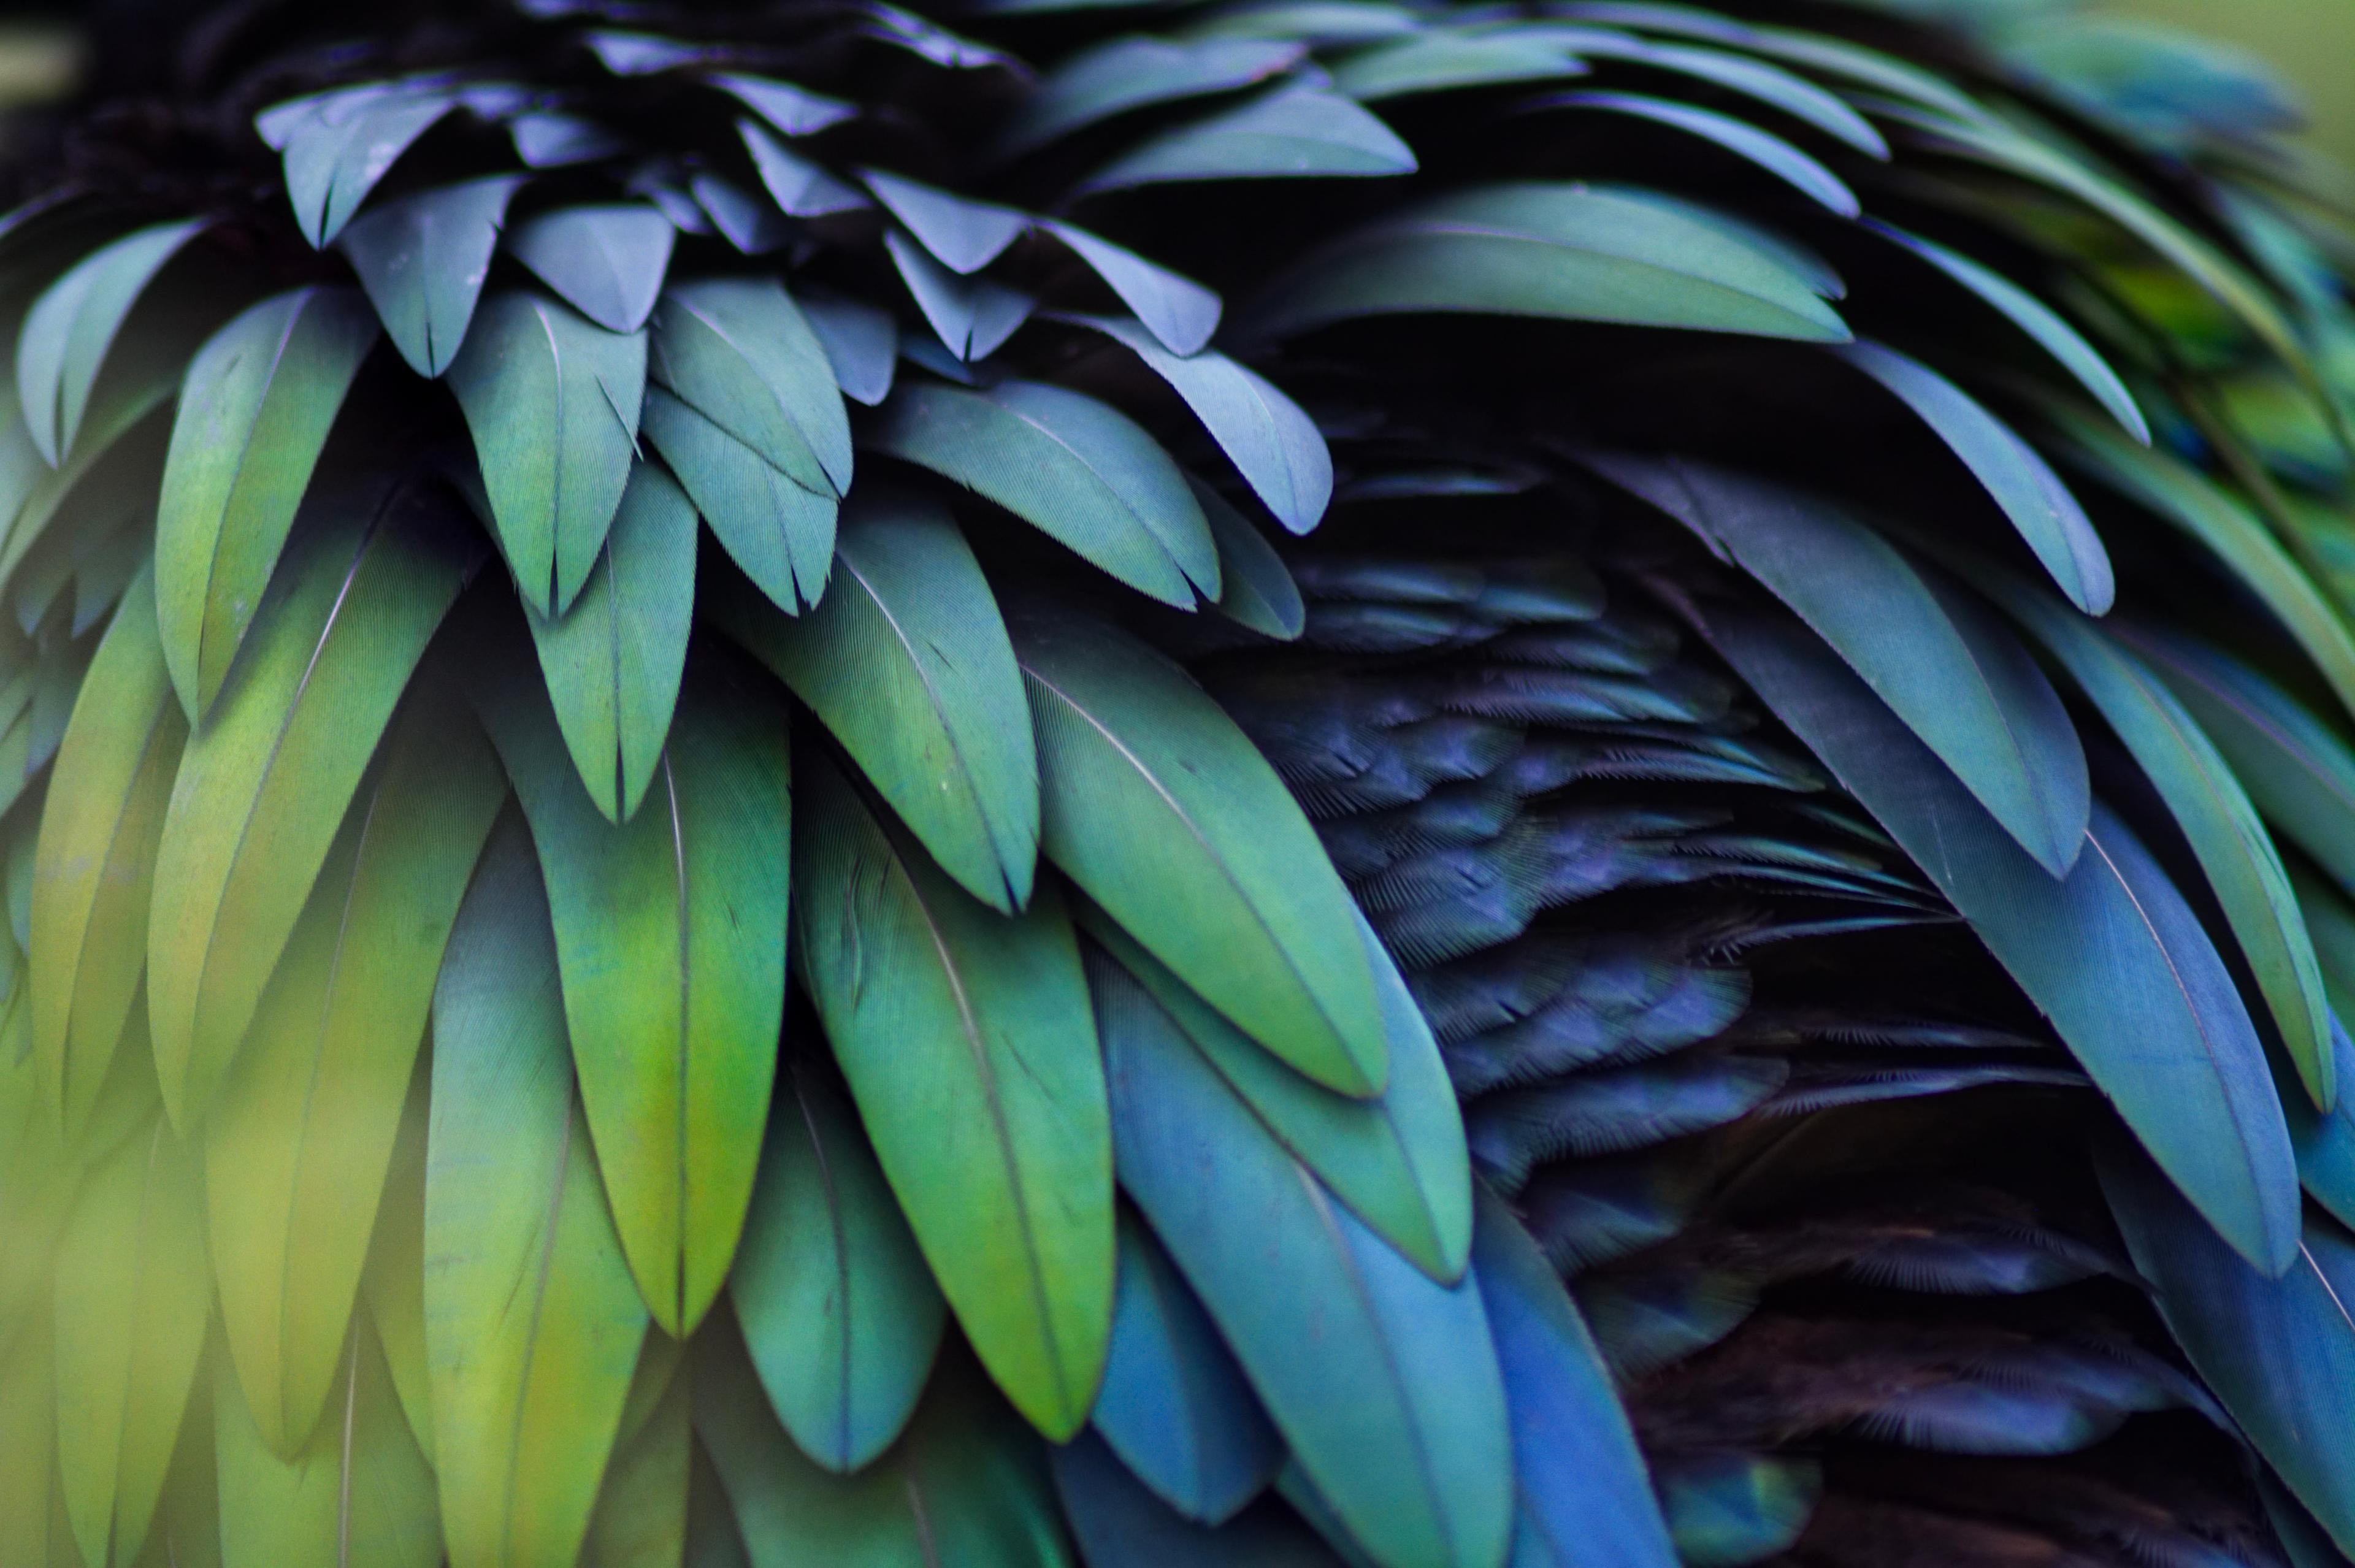 A close-up of irridescent green, blue, and teal bird feathers.